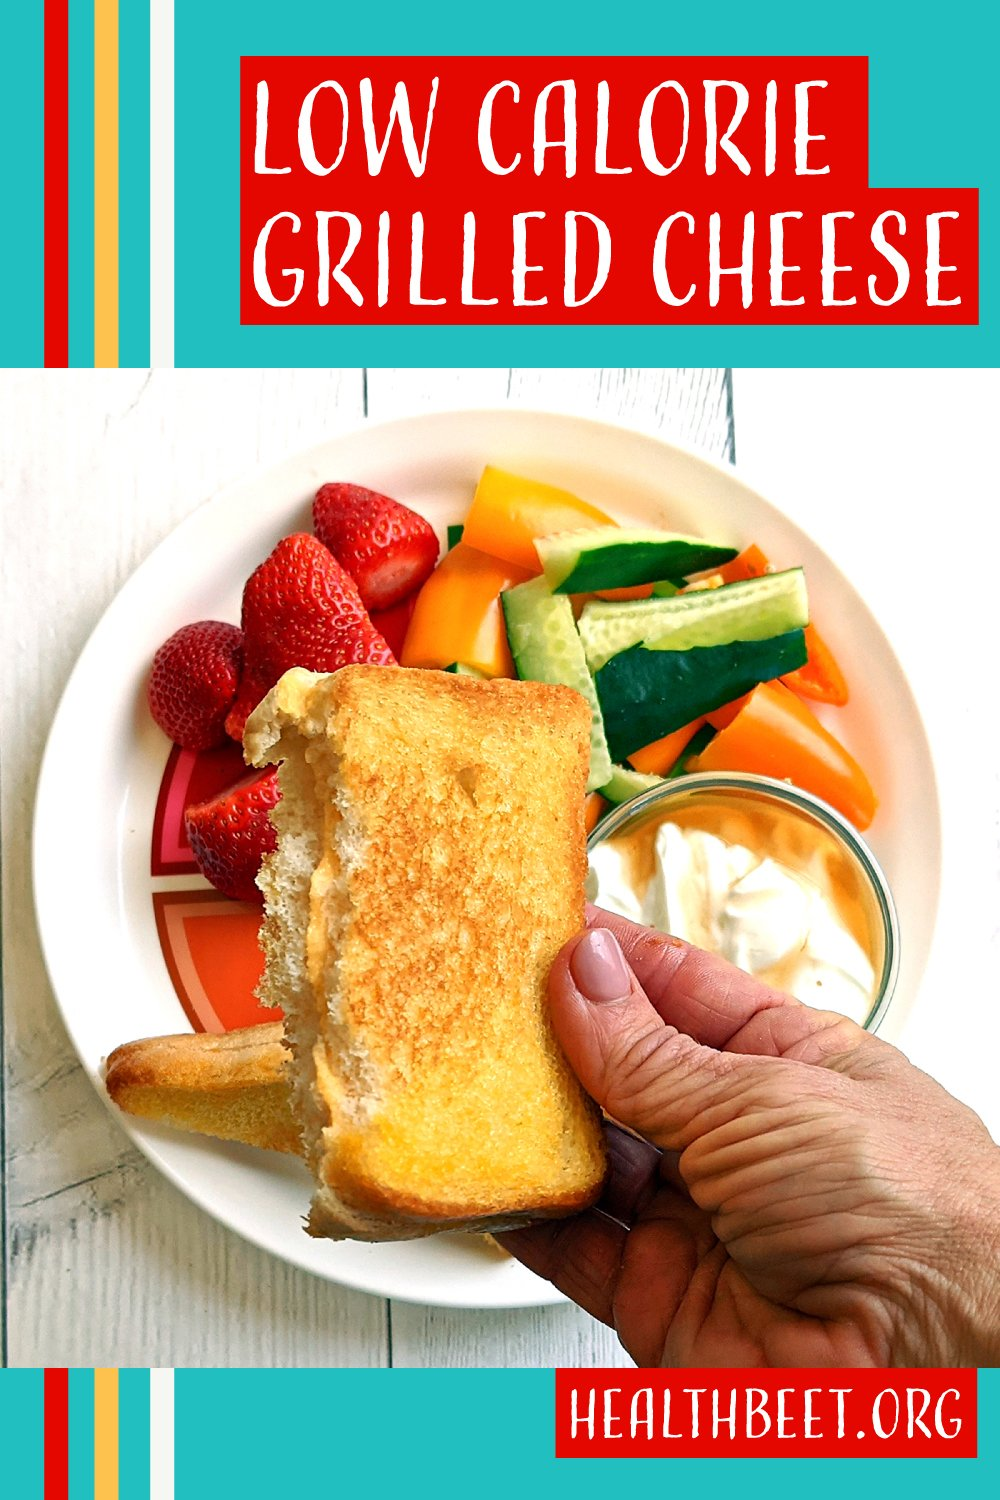 Low calorie grilled cheese